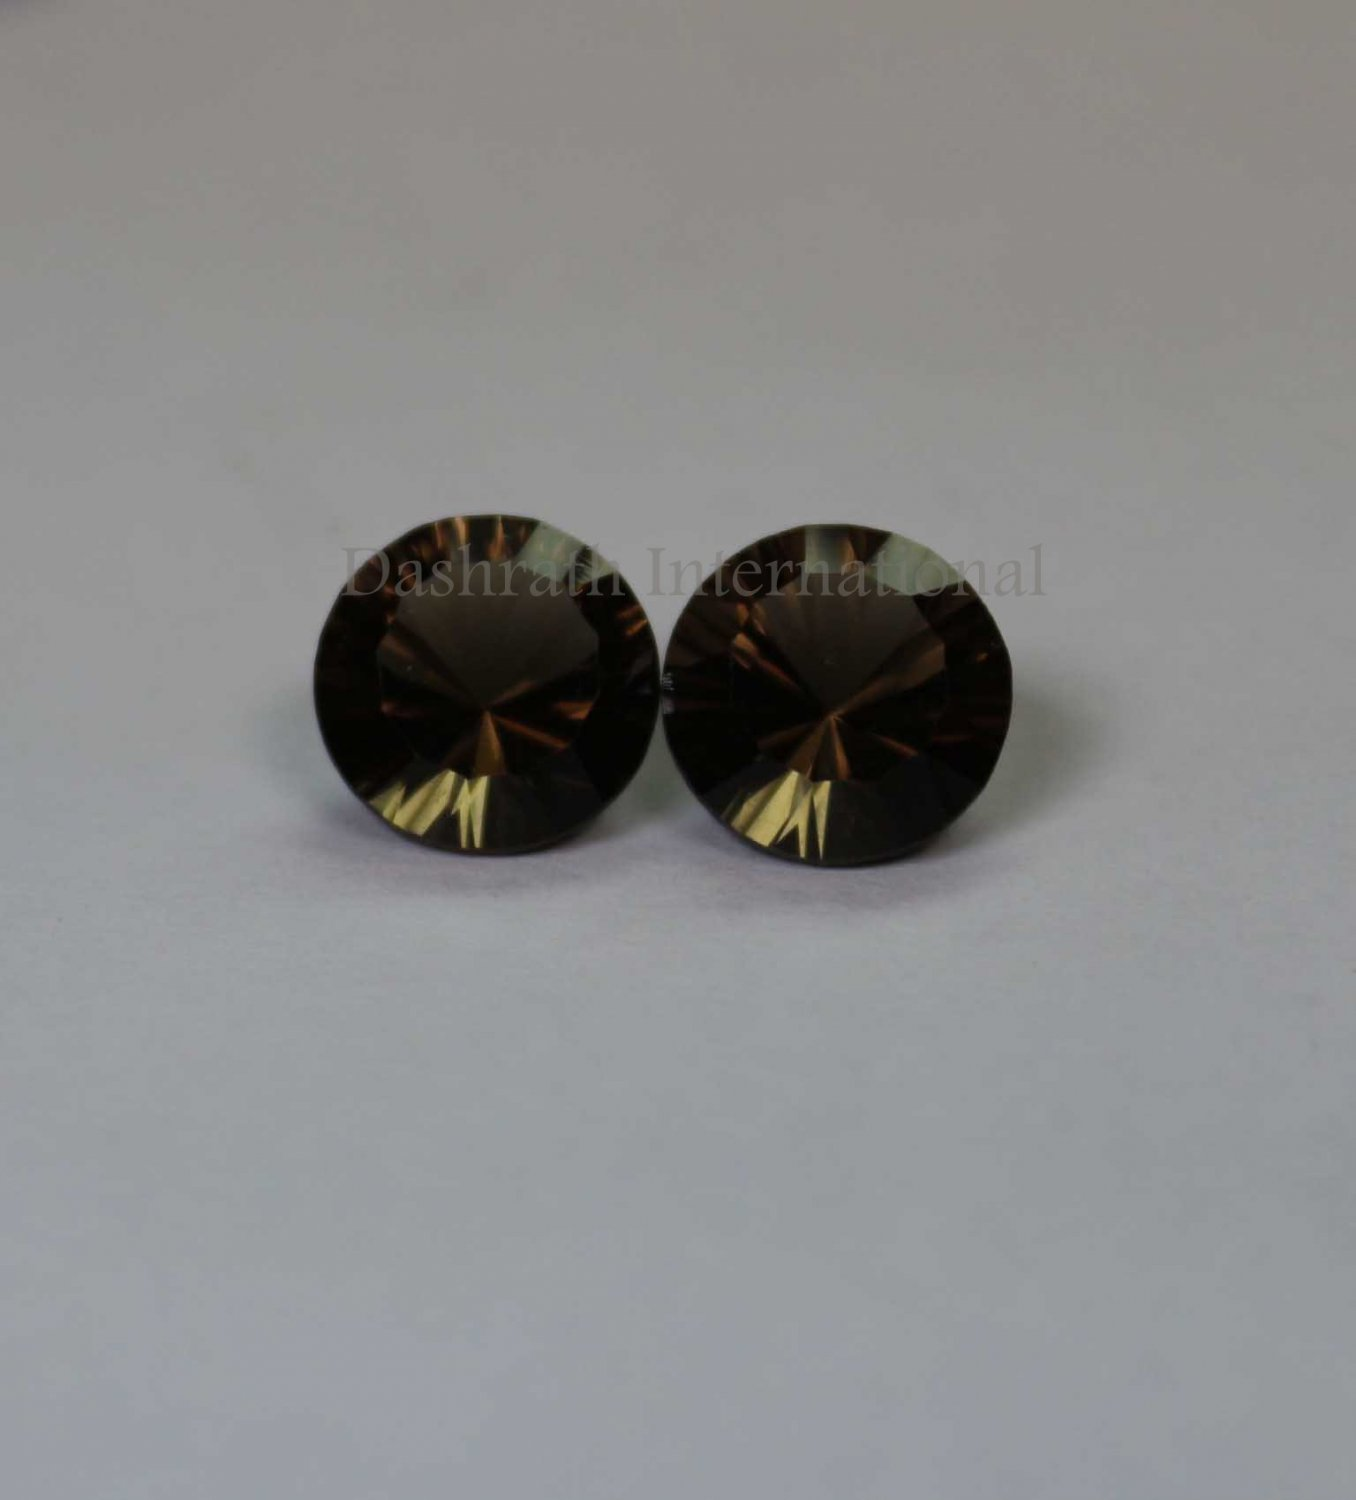 20mm Natural Smoky Quartz Concave Cut Round 2 Piece (1 Pair )  (SI) Top Quality  Loose Gemstone